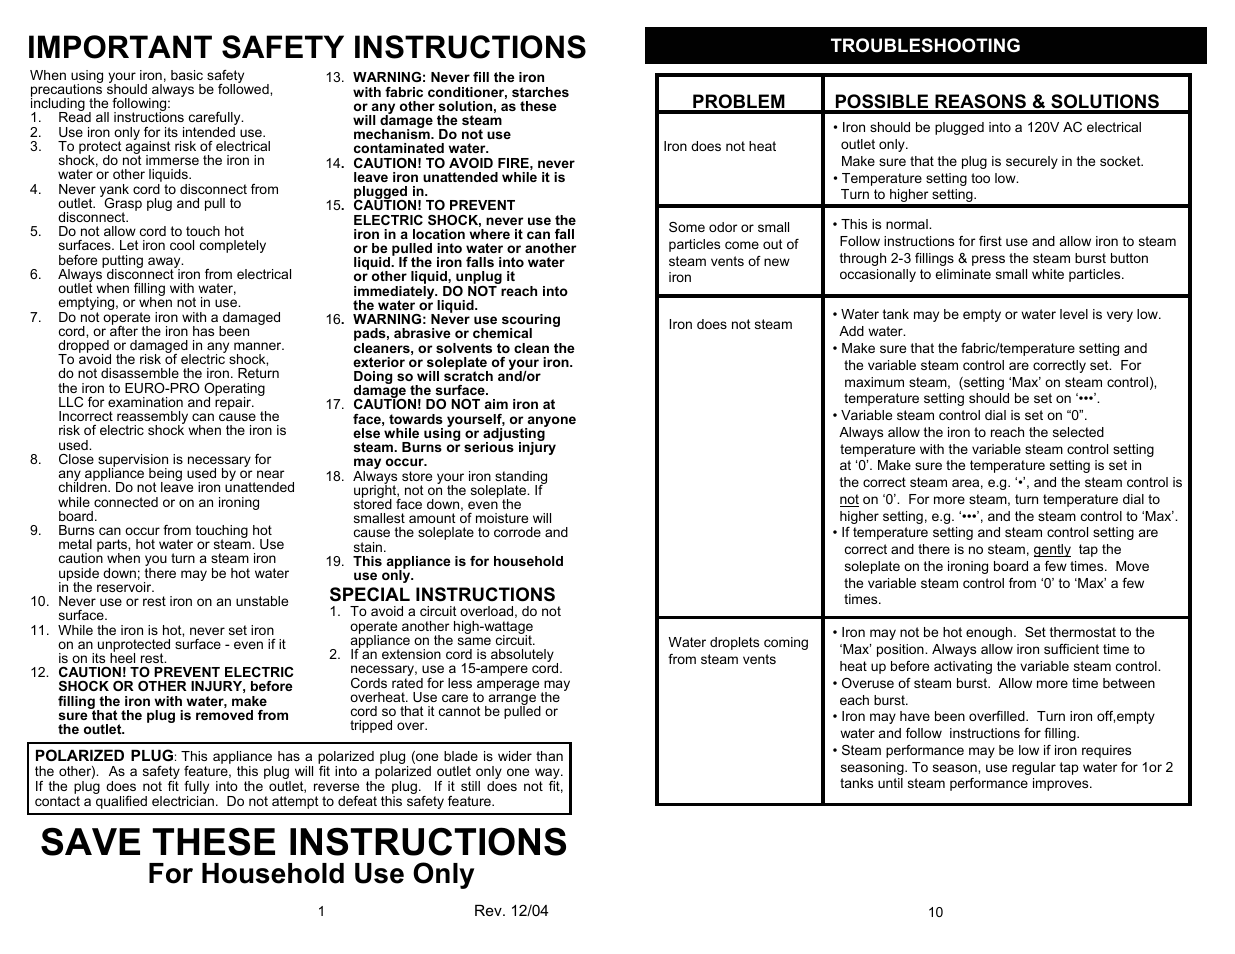 Save these instructions, Important safety instructions, For household use  only | Special instructions |